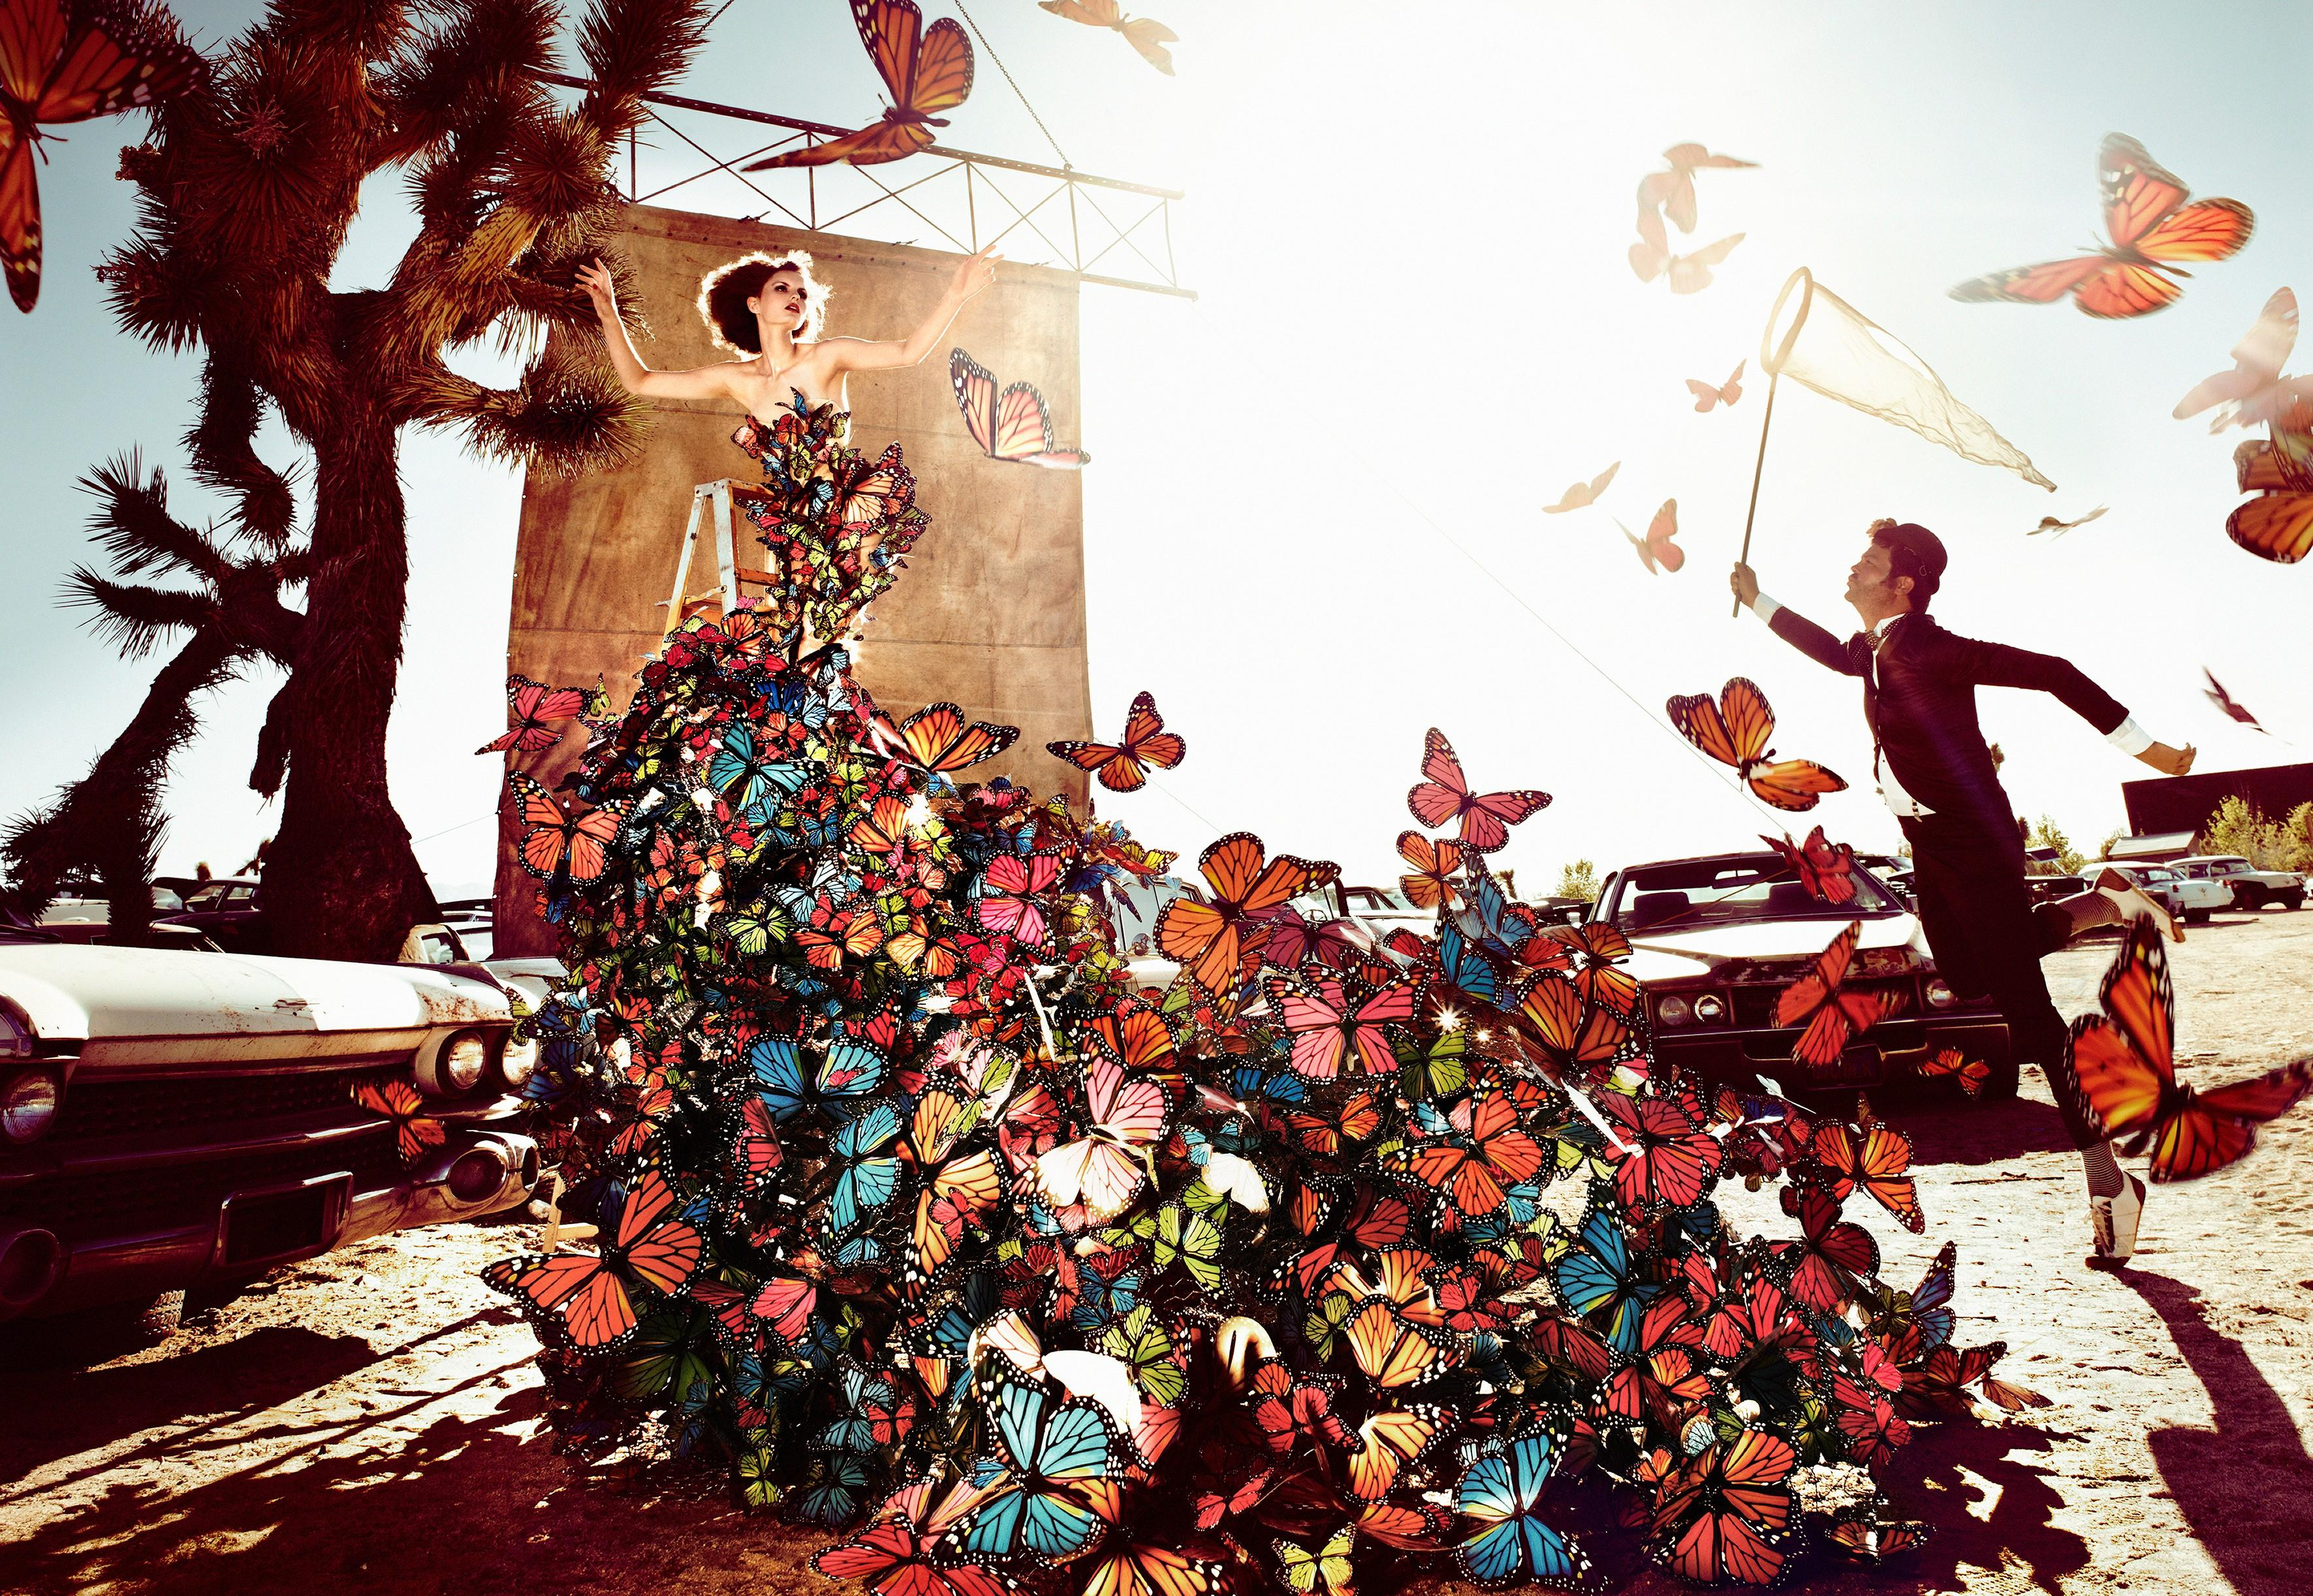 Butterfly - surreal fairytale portrait of two models